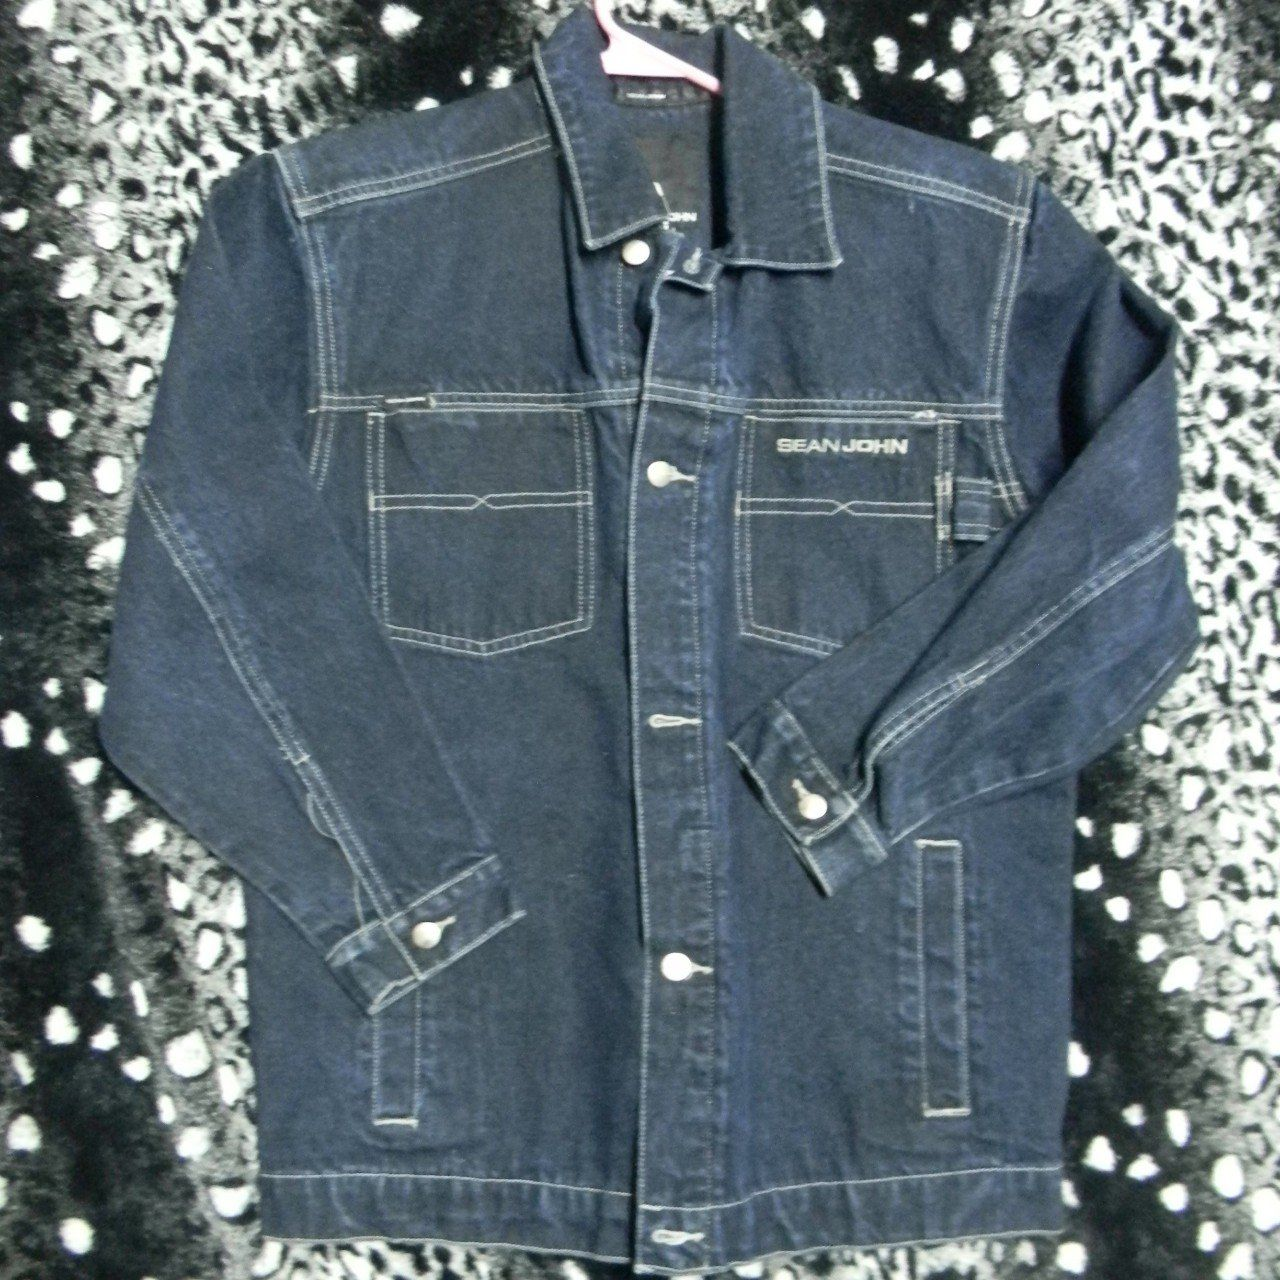 Dm With Any Questions This Is A Sean John Denim Jacket In Excellent Condition With No Rips Or Stains Sleeve To Pit 15 Pit To Pit Denim Jacket Denim Jackets [ 1280 x 1280 Pixel ]